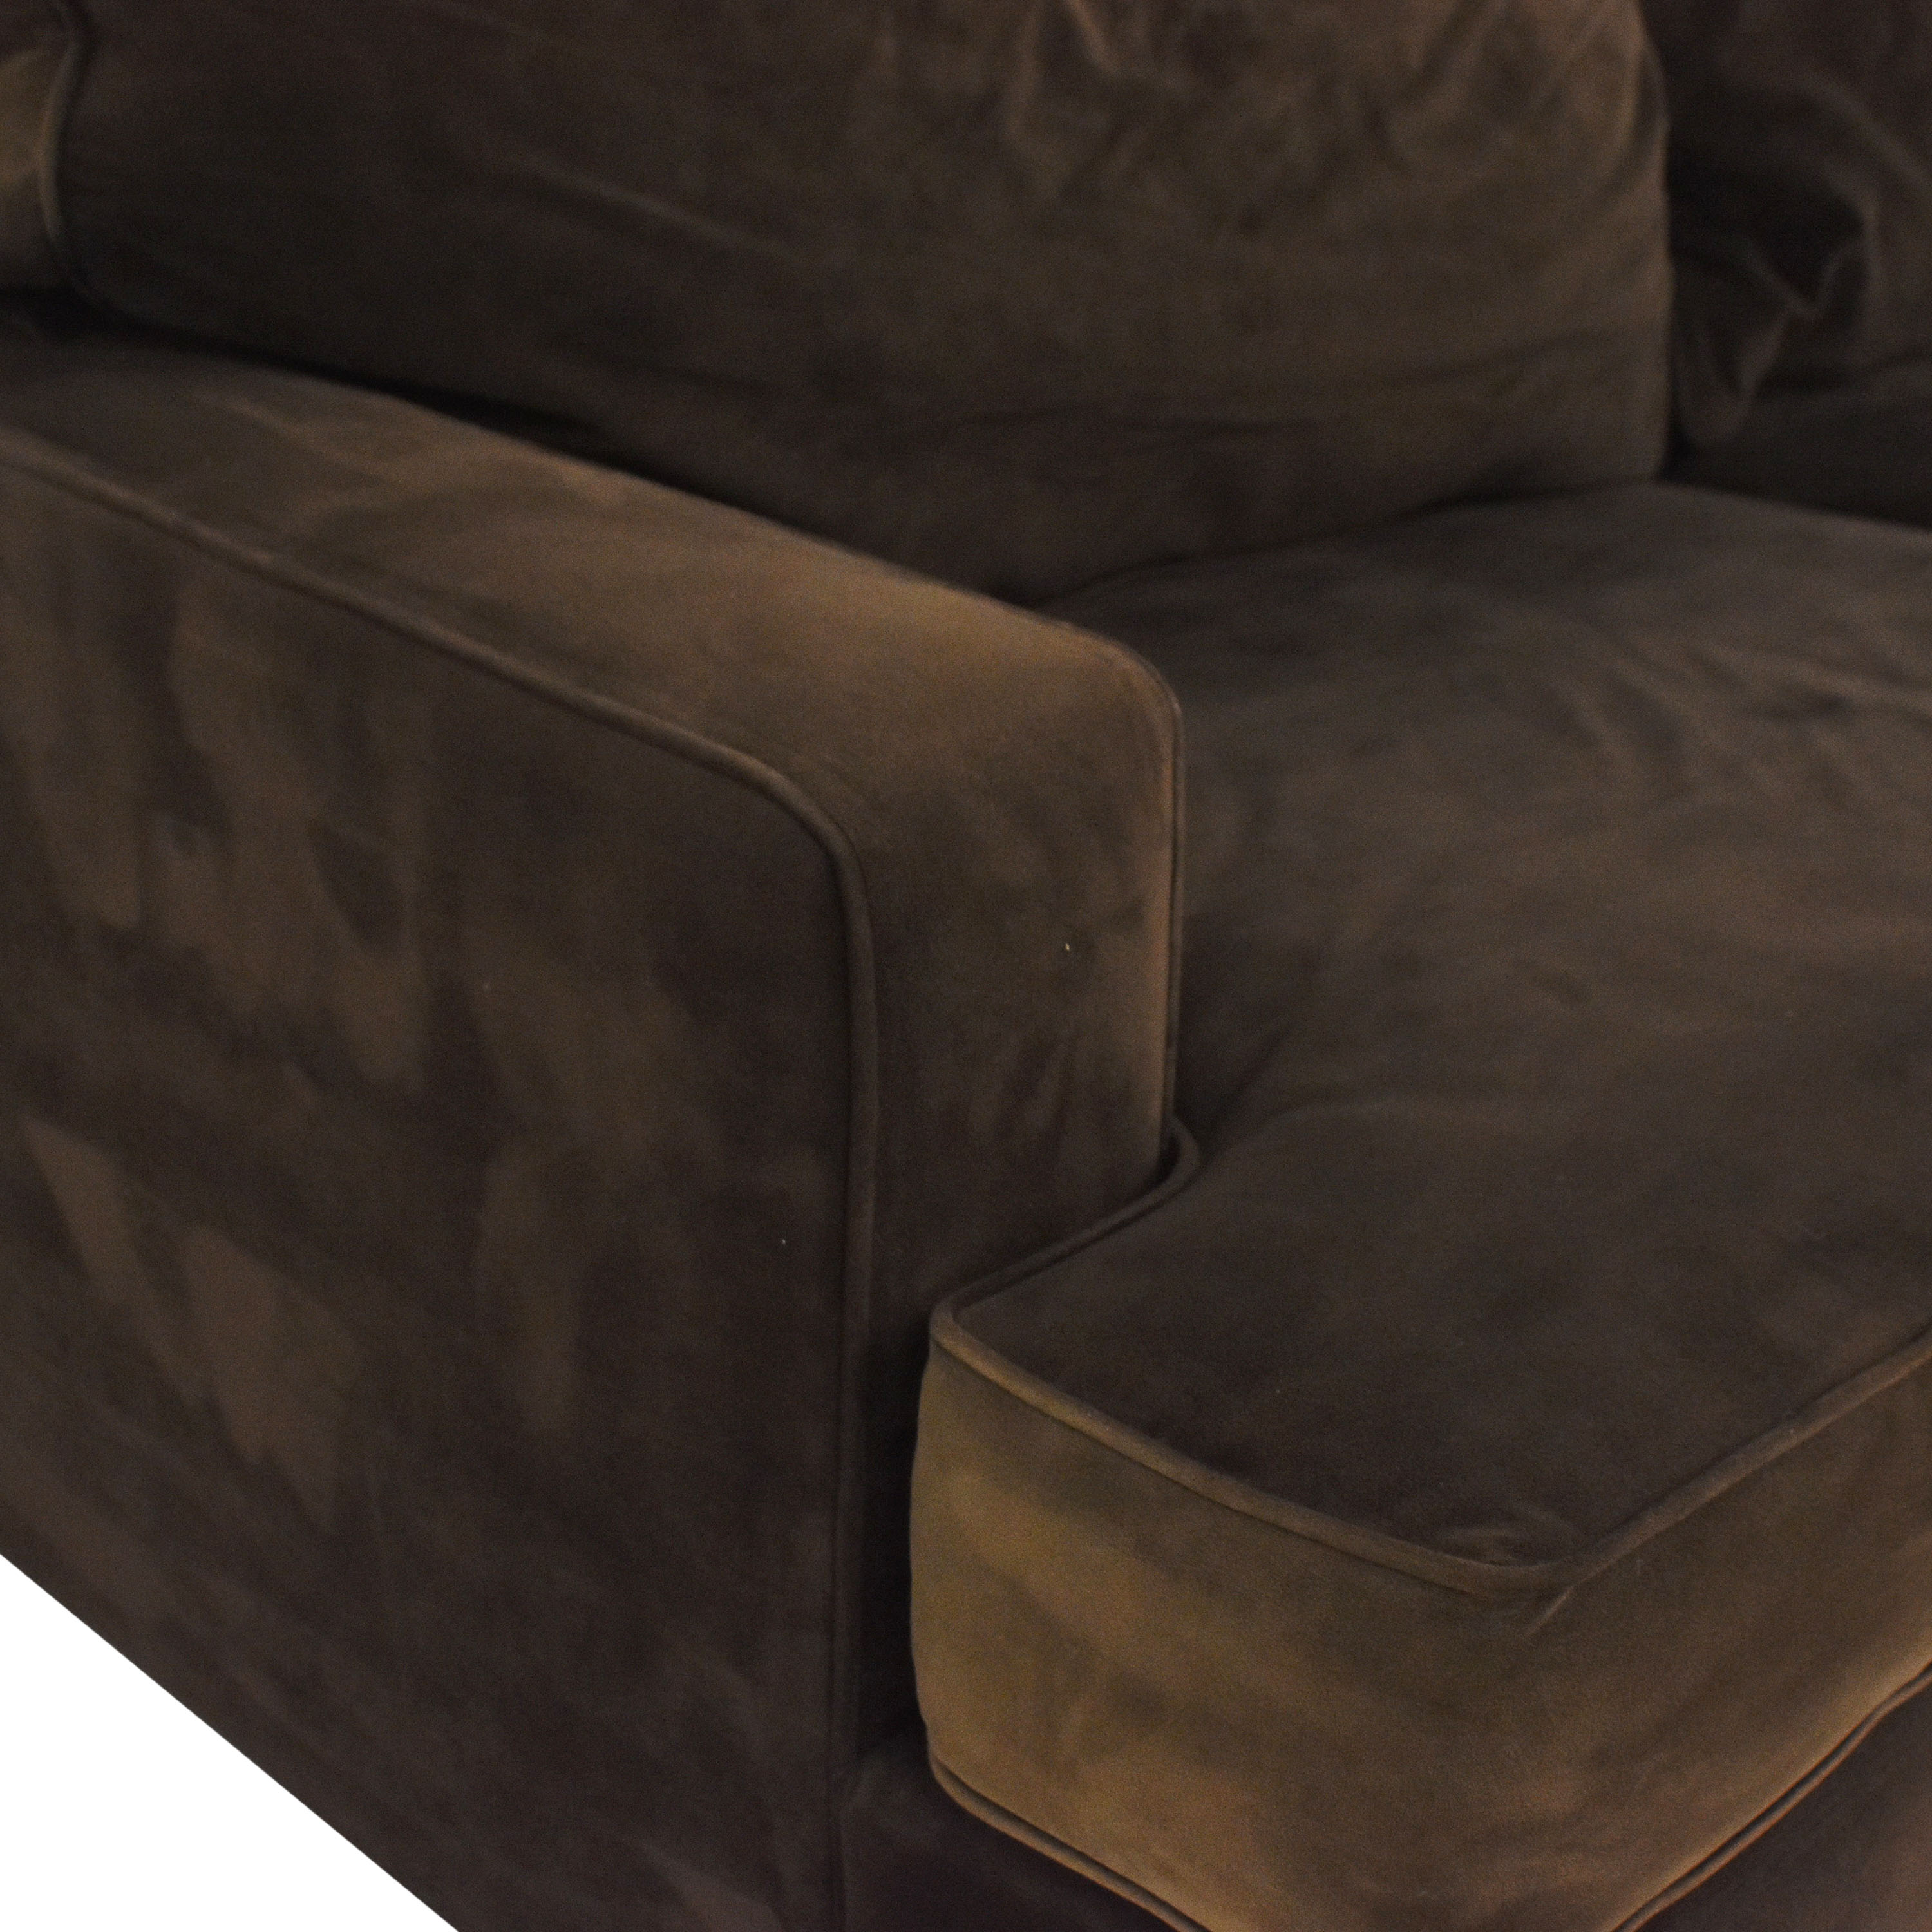 Haverty's Classic Style Sofa sale